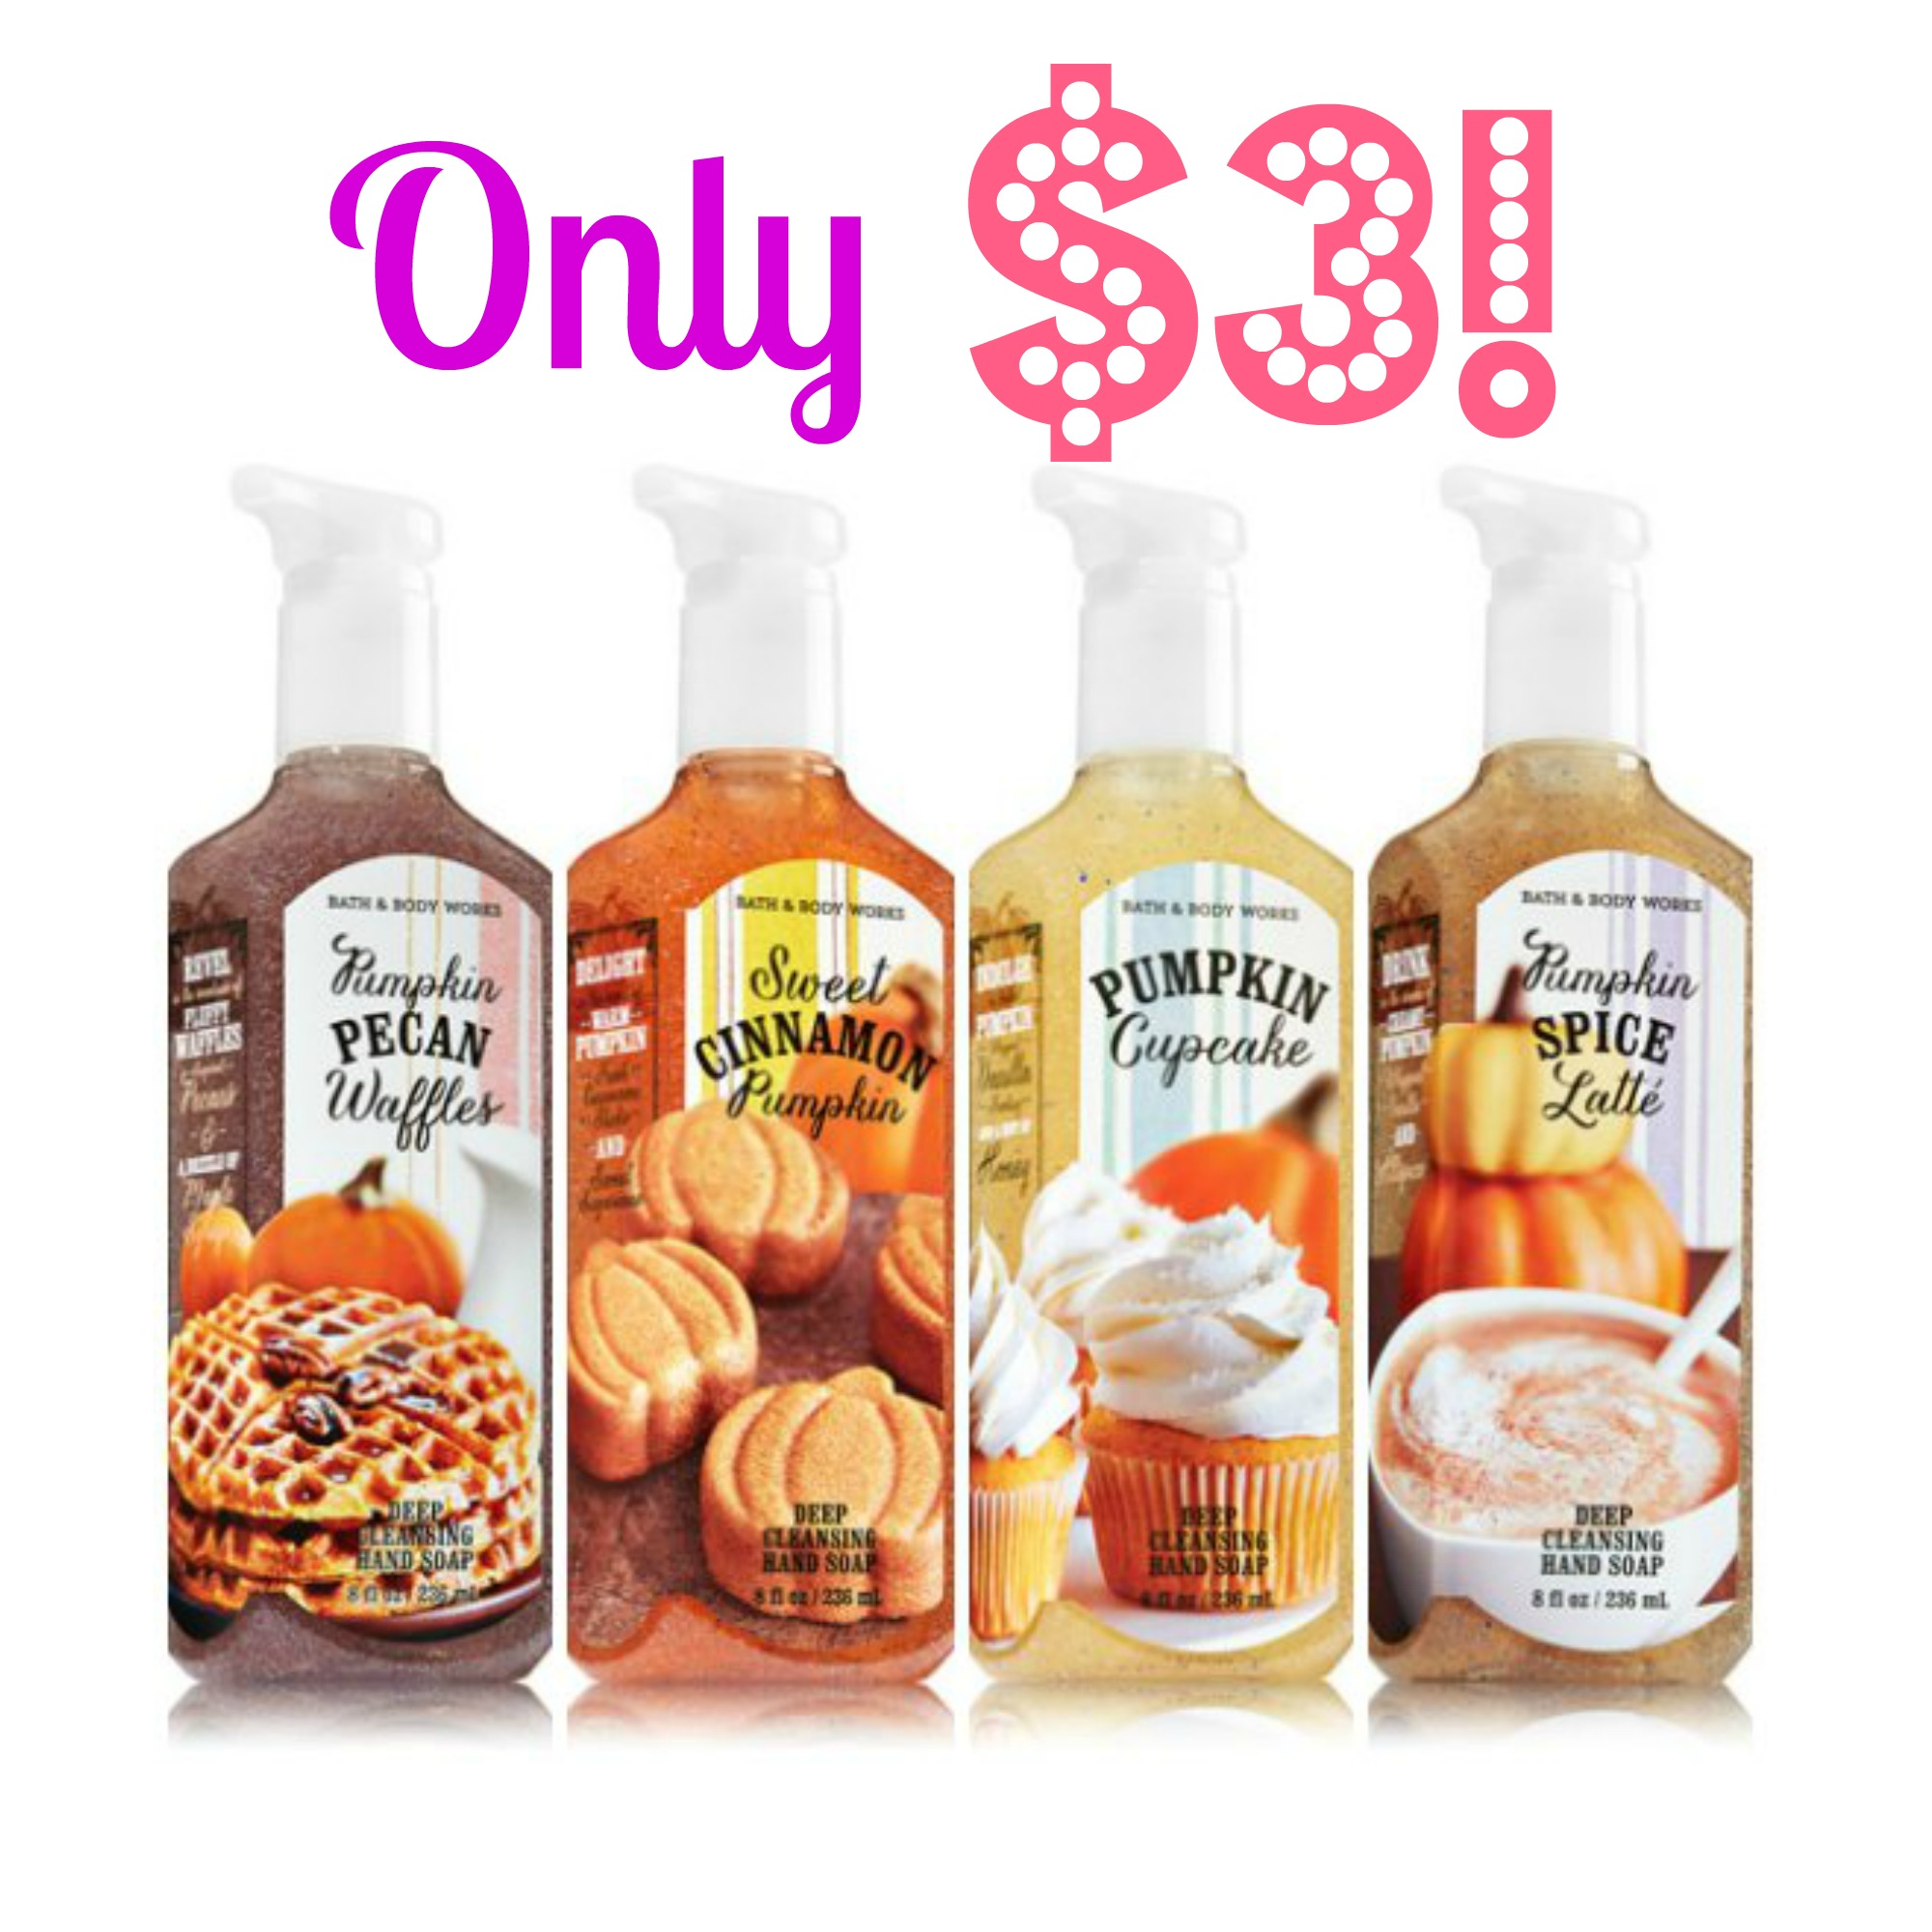 Eau de Toilette - Discount bath and beauty products by top brands. Get the sweetest smelling moisturizers, shower gels, skin care packages, and perfumes.